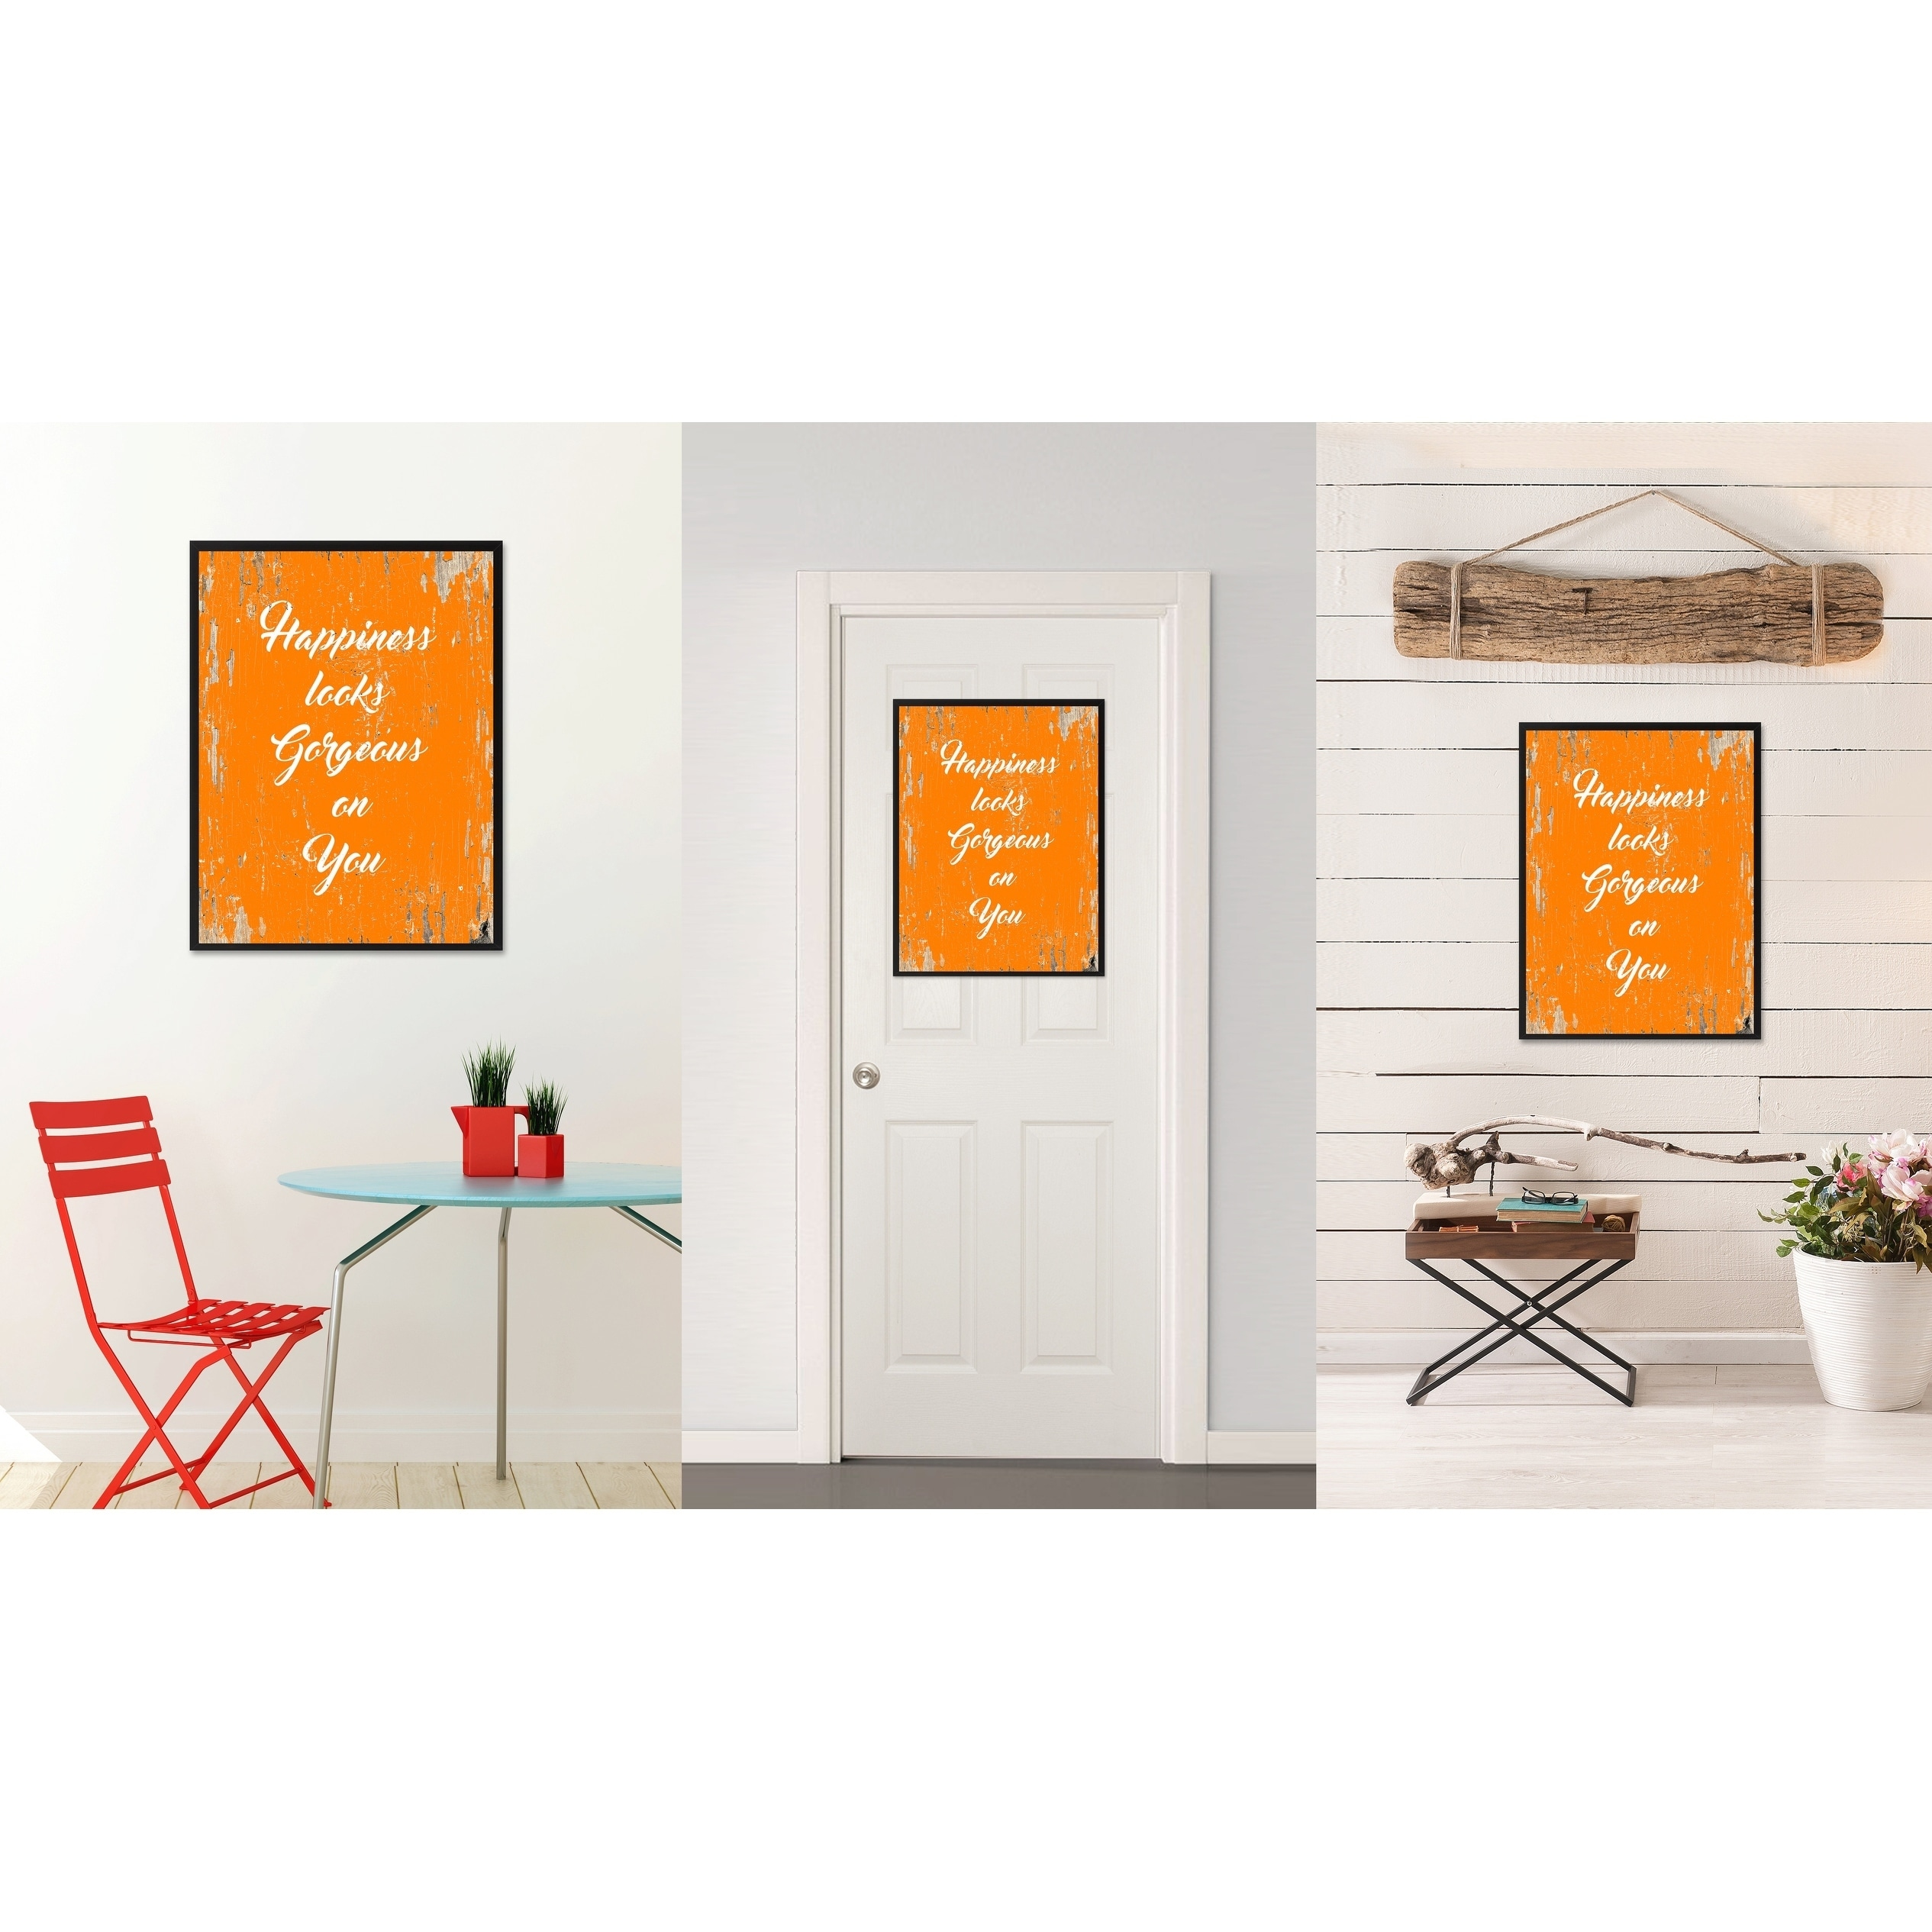 shop happiness looks gorgeous on you saying canvas print picture